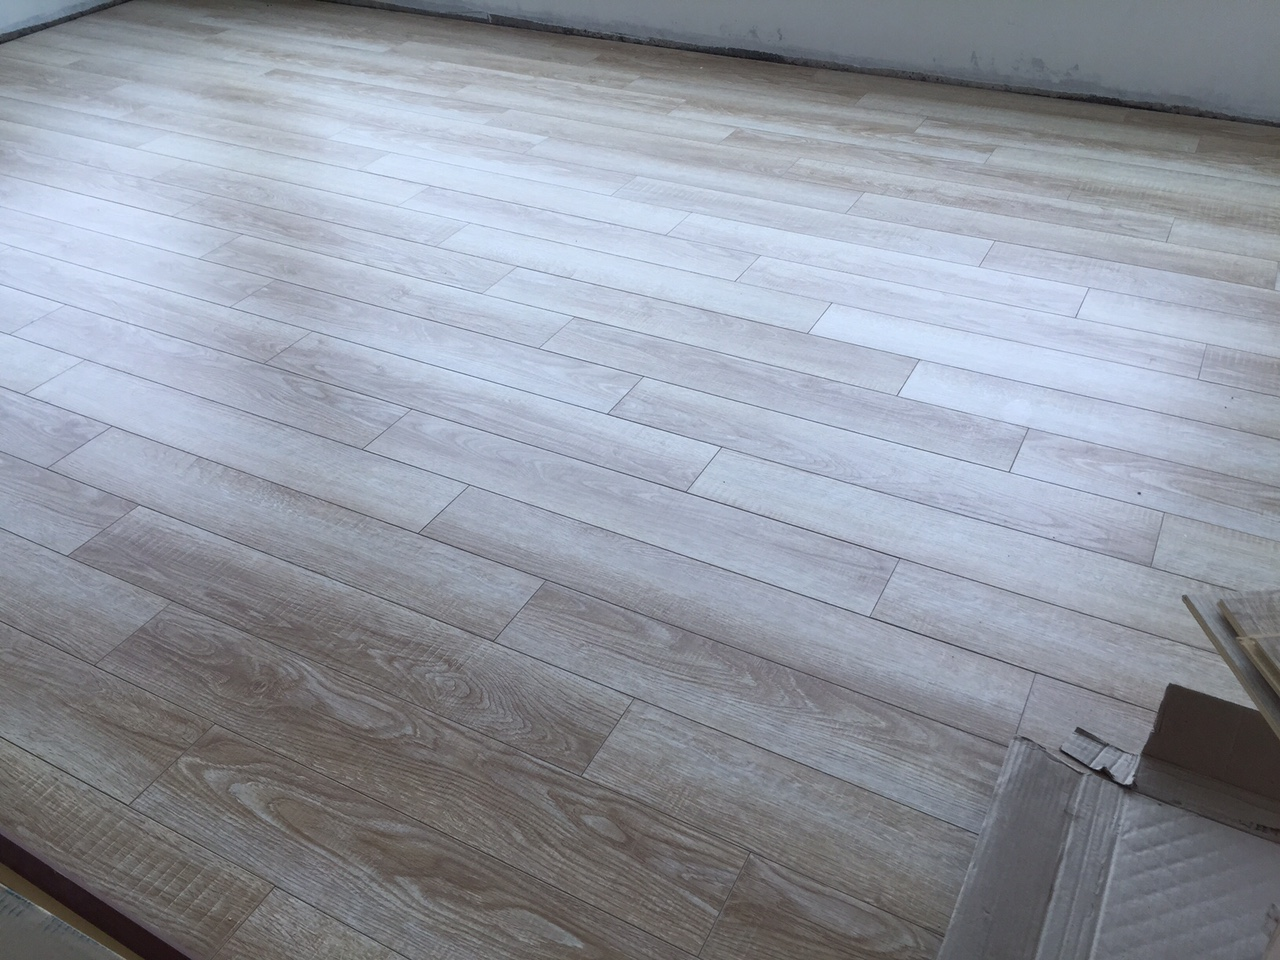 Waterproof 12mm Laminate Flooring